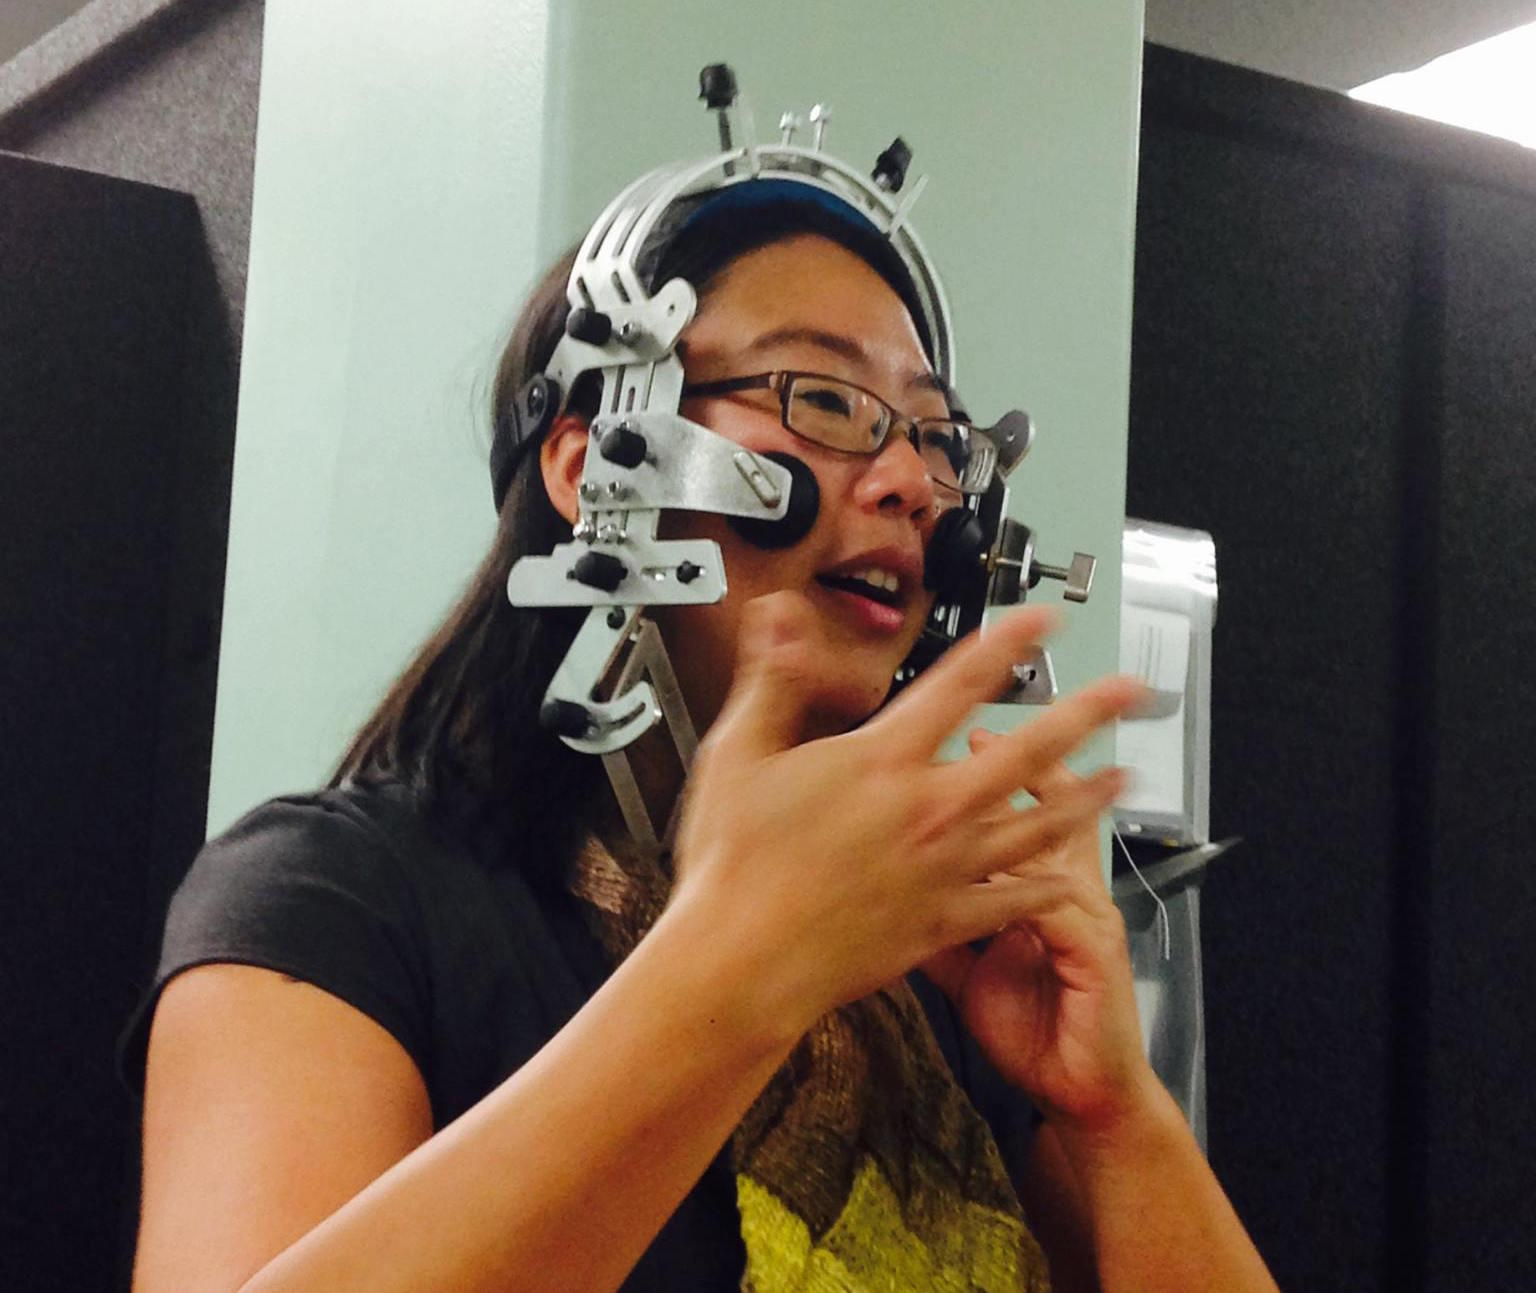 Prof. Susan Lin with ultrasound helmet, 2015